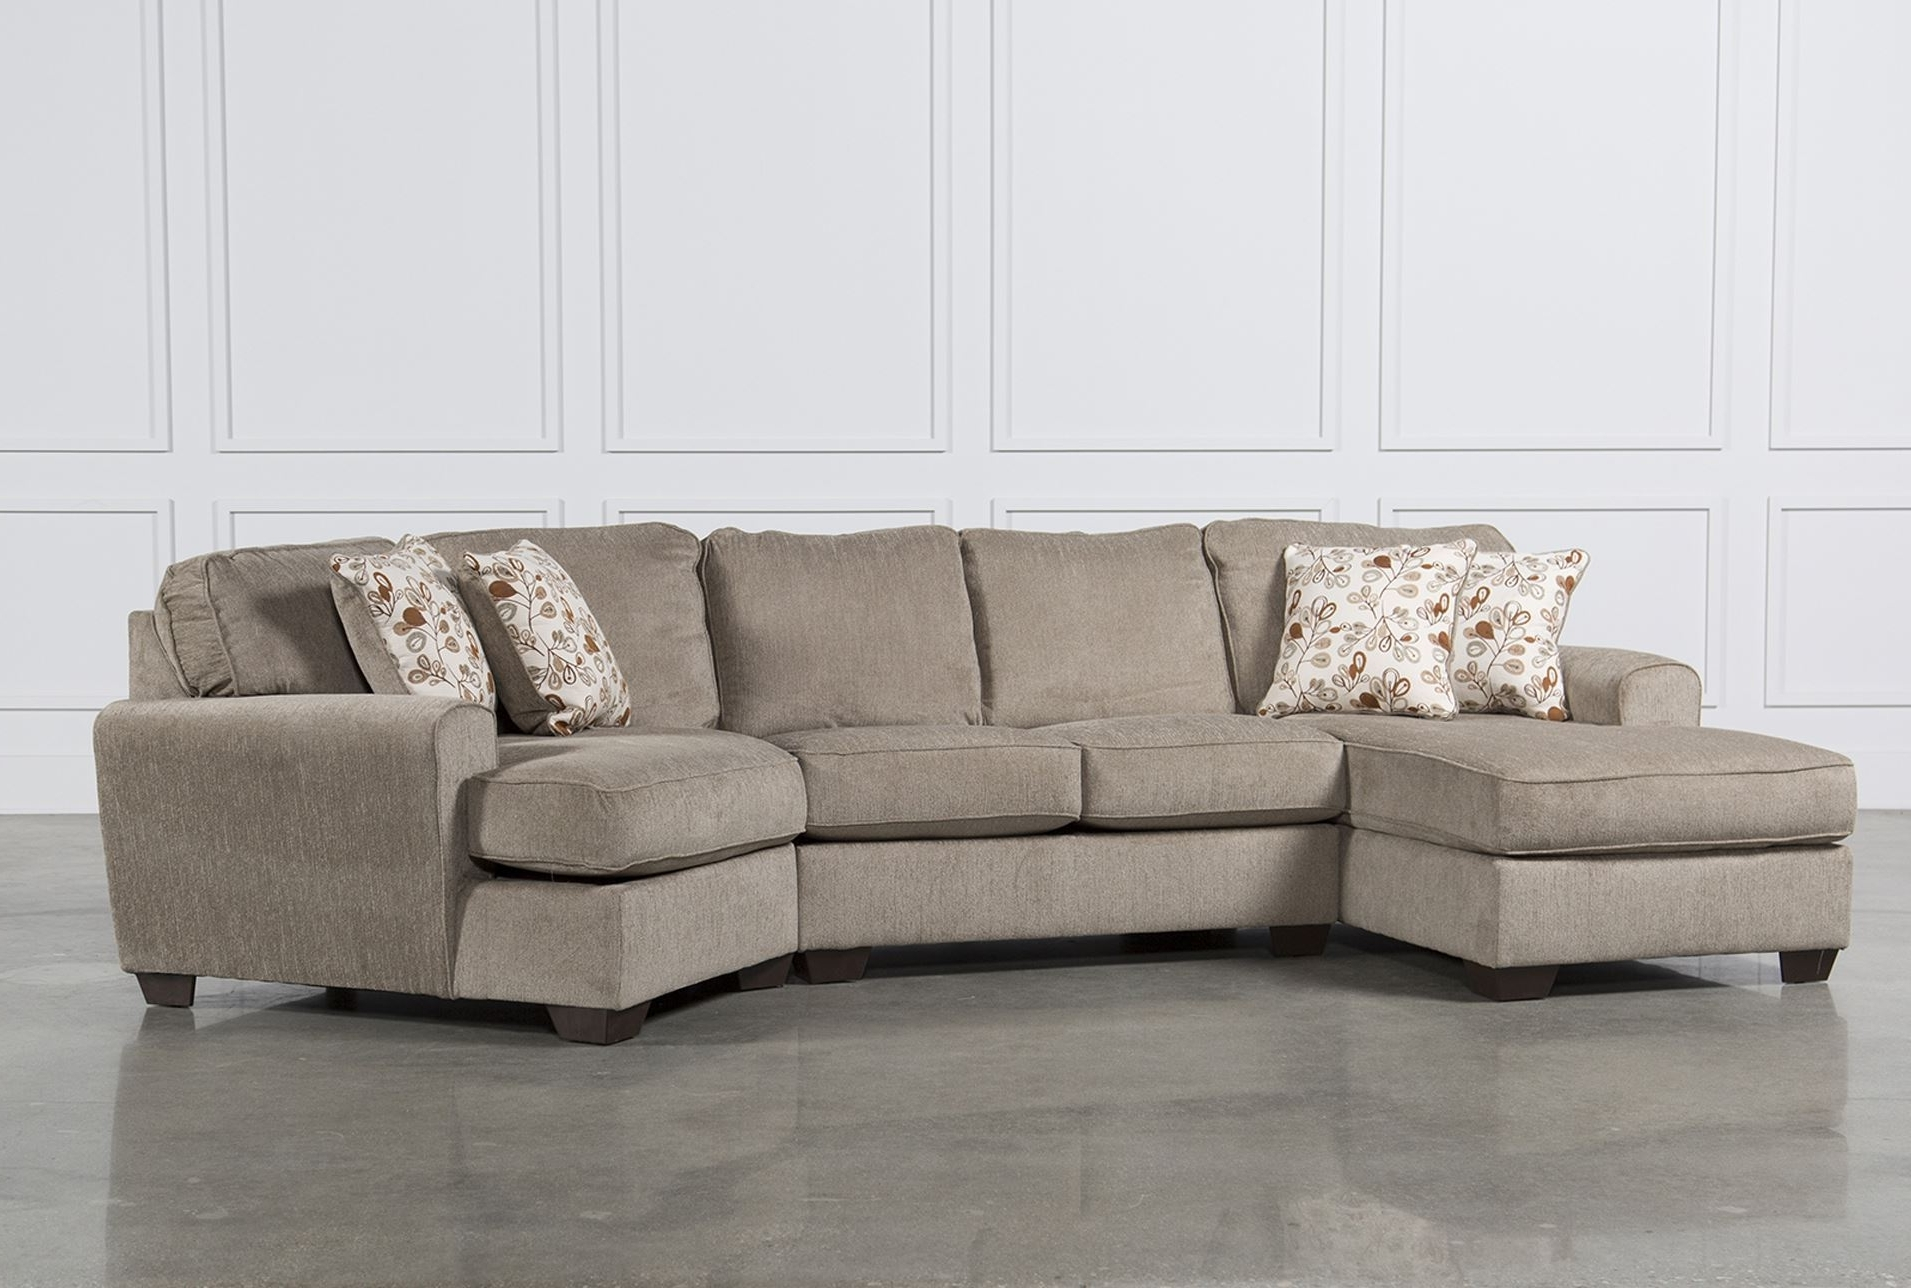 Widely Used 3 Piece Sectional Sofas With Chaise Within Patola Park 4 Piece Sectional W Raf Cuddler Living Spaces In Sofa (View 15 of 15)